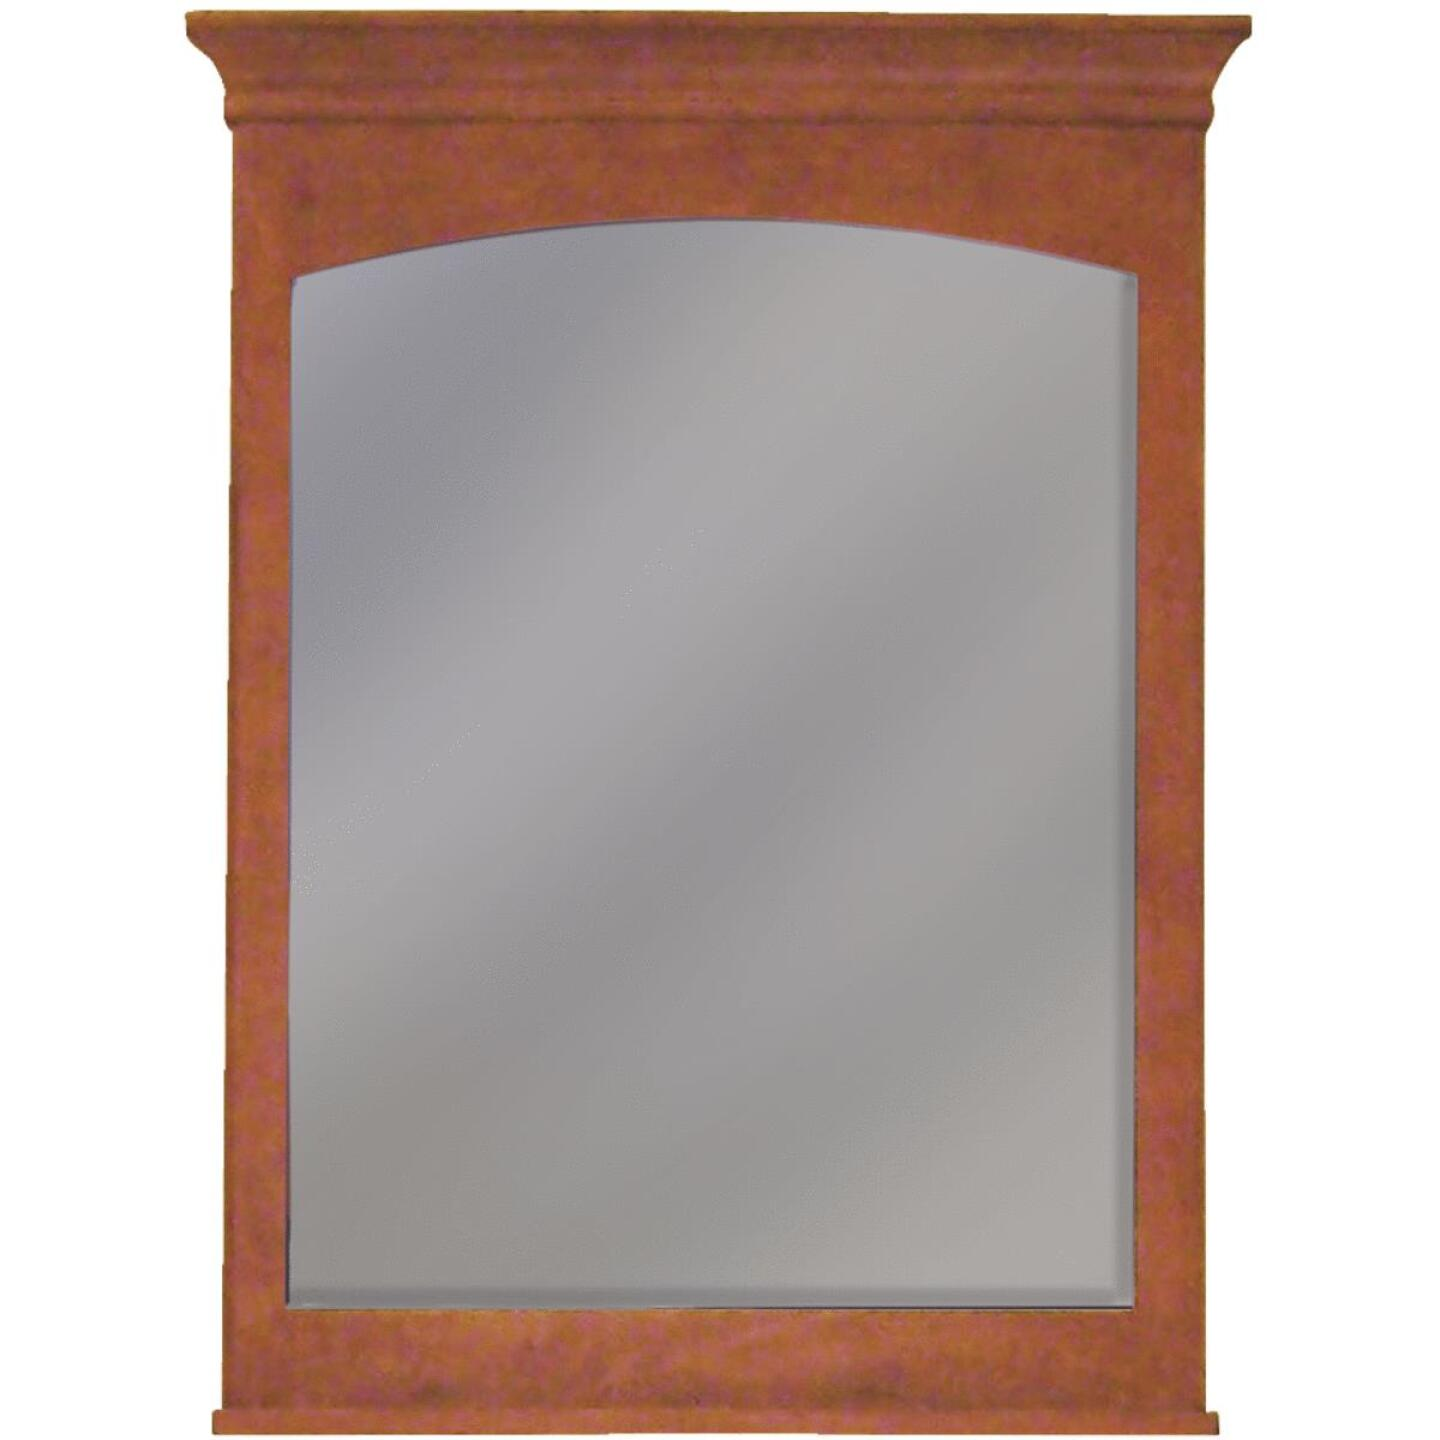 Sunny Wood Expressions Cinnamon 30 In. W x 40 In. H Vanity Mirror Image 1